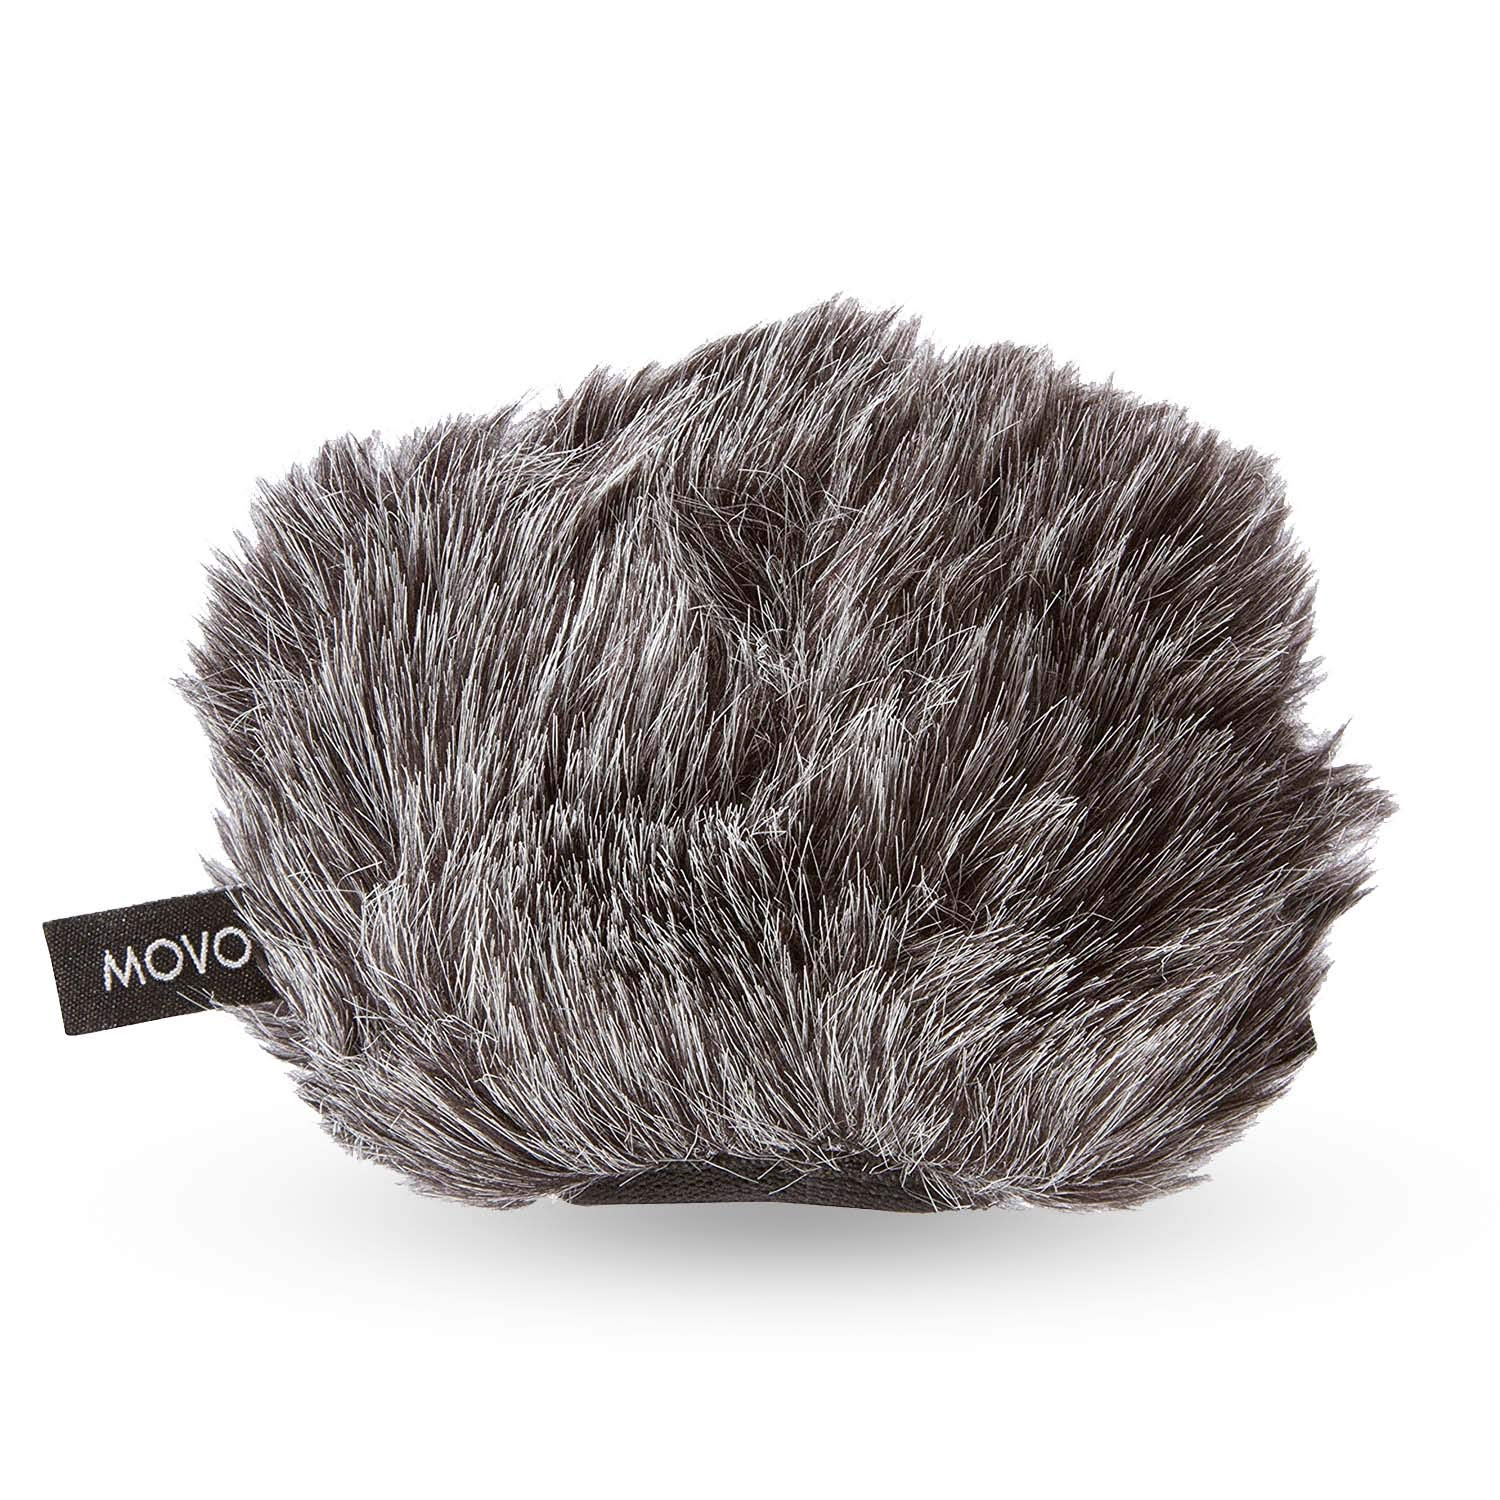 Movo WS-G9 Furry Outdoor Microphone Windscreen Muff for Portable Digital Recorders up to 3'' X 1.5'' (W x D) - Fits the Zoom H4n, H4n PRO, H5, H6, Tascam DR-40, DR-05, DR-07 and More (Dark Gray) by Movo